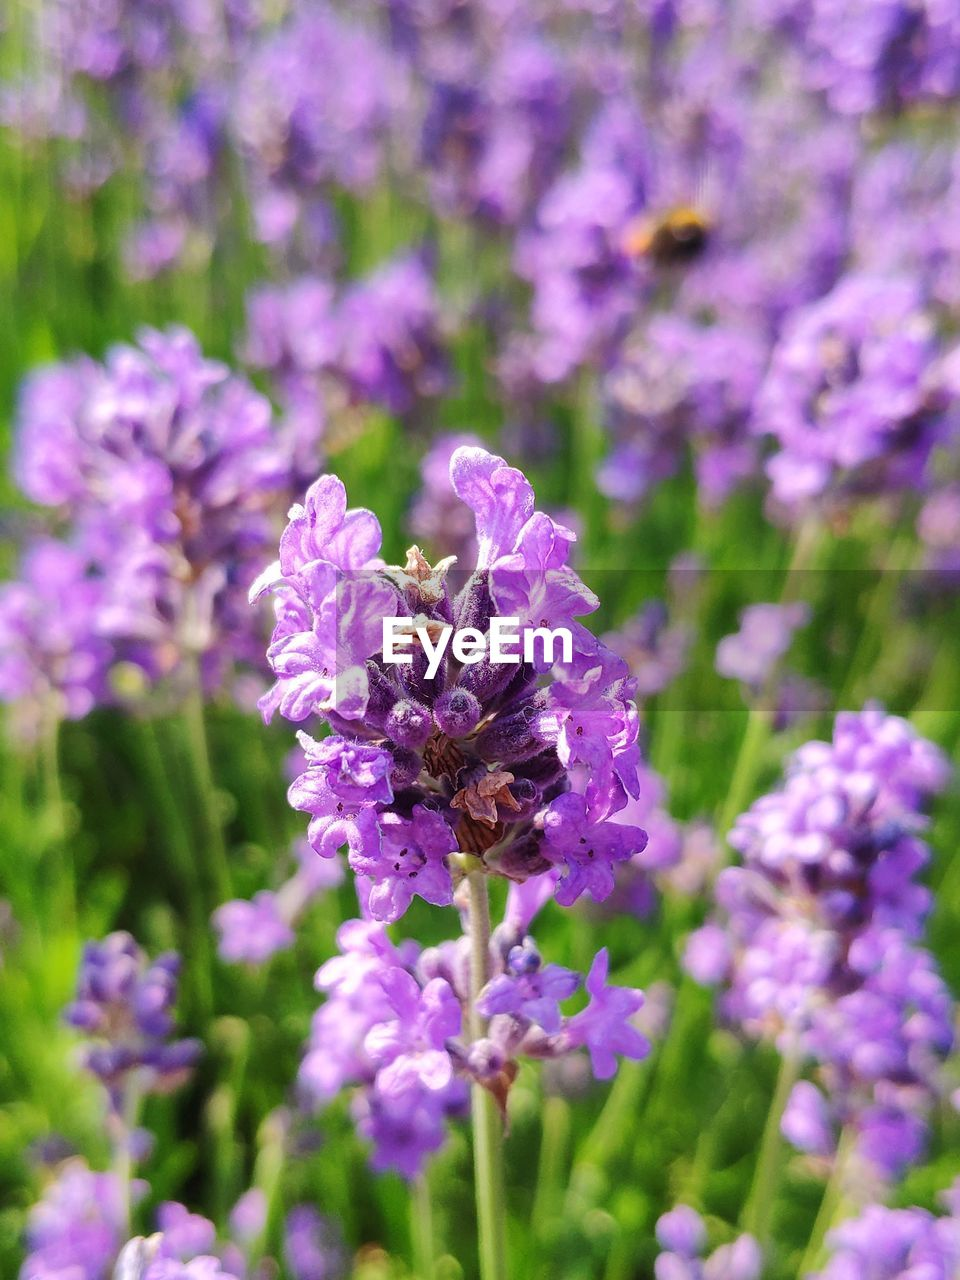 flowering plant, flower, animal, freshness, fragility, insect, invertebrate, animal themes, vulnerability, plant, beauty in nature, growth, one animal, animals in the wild, petal, animal wildlife, purple, flower head, bee, close-up, pollination, no people, lavender, bumblebee